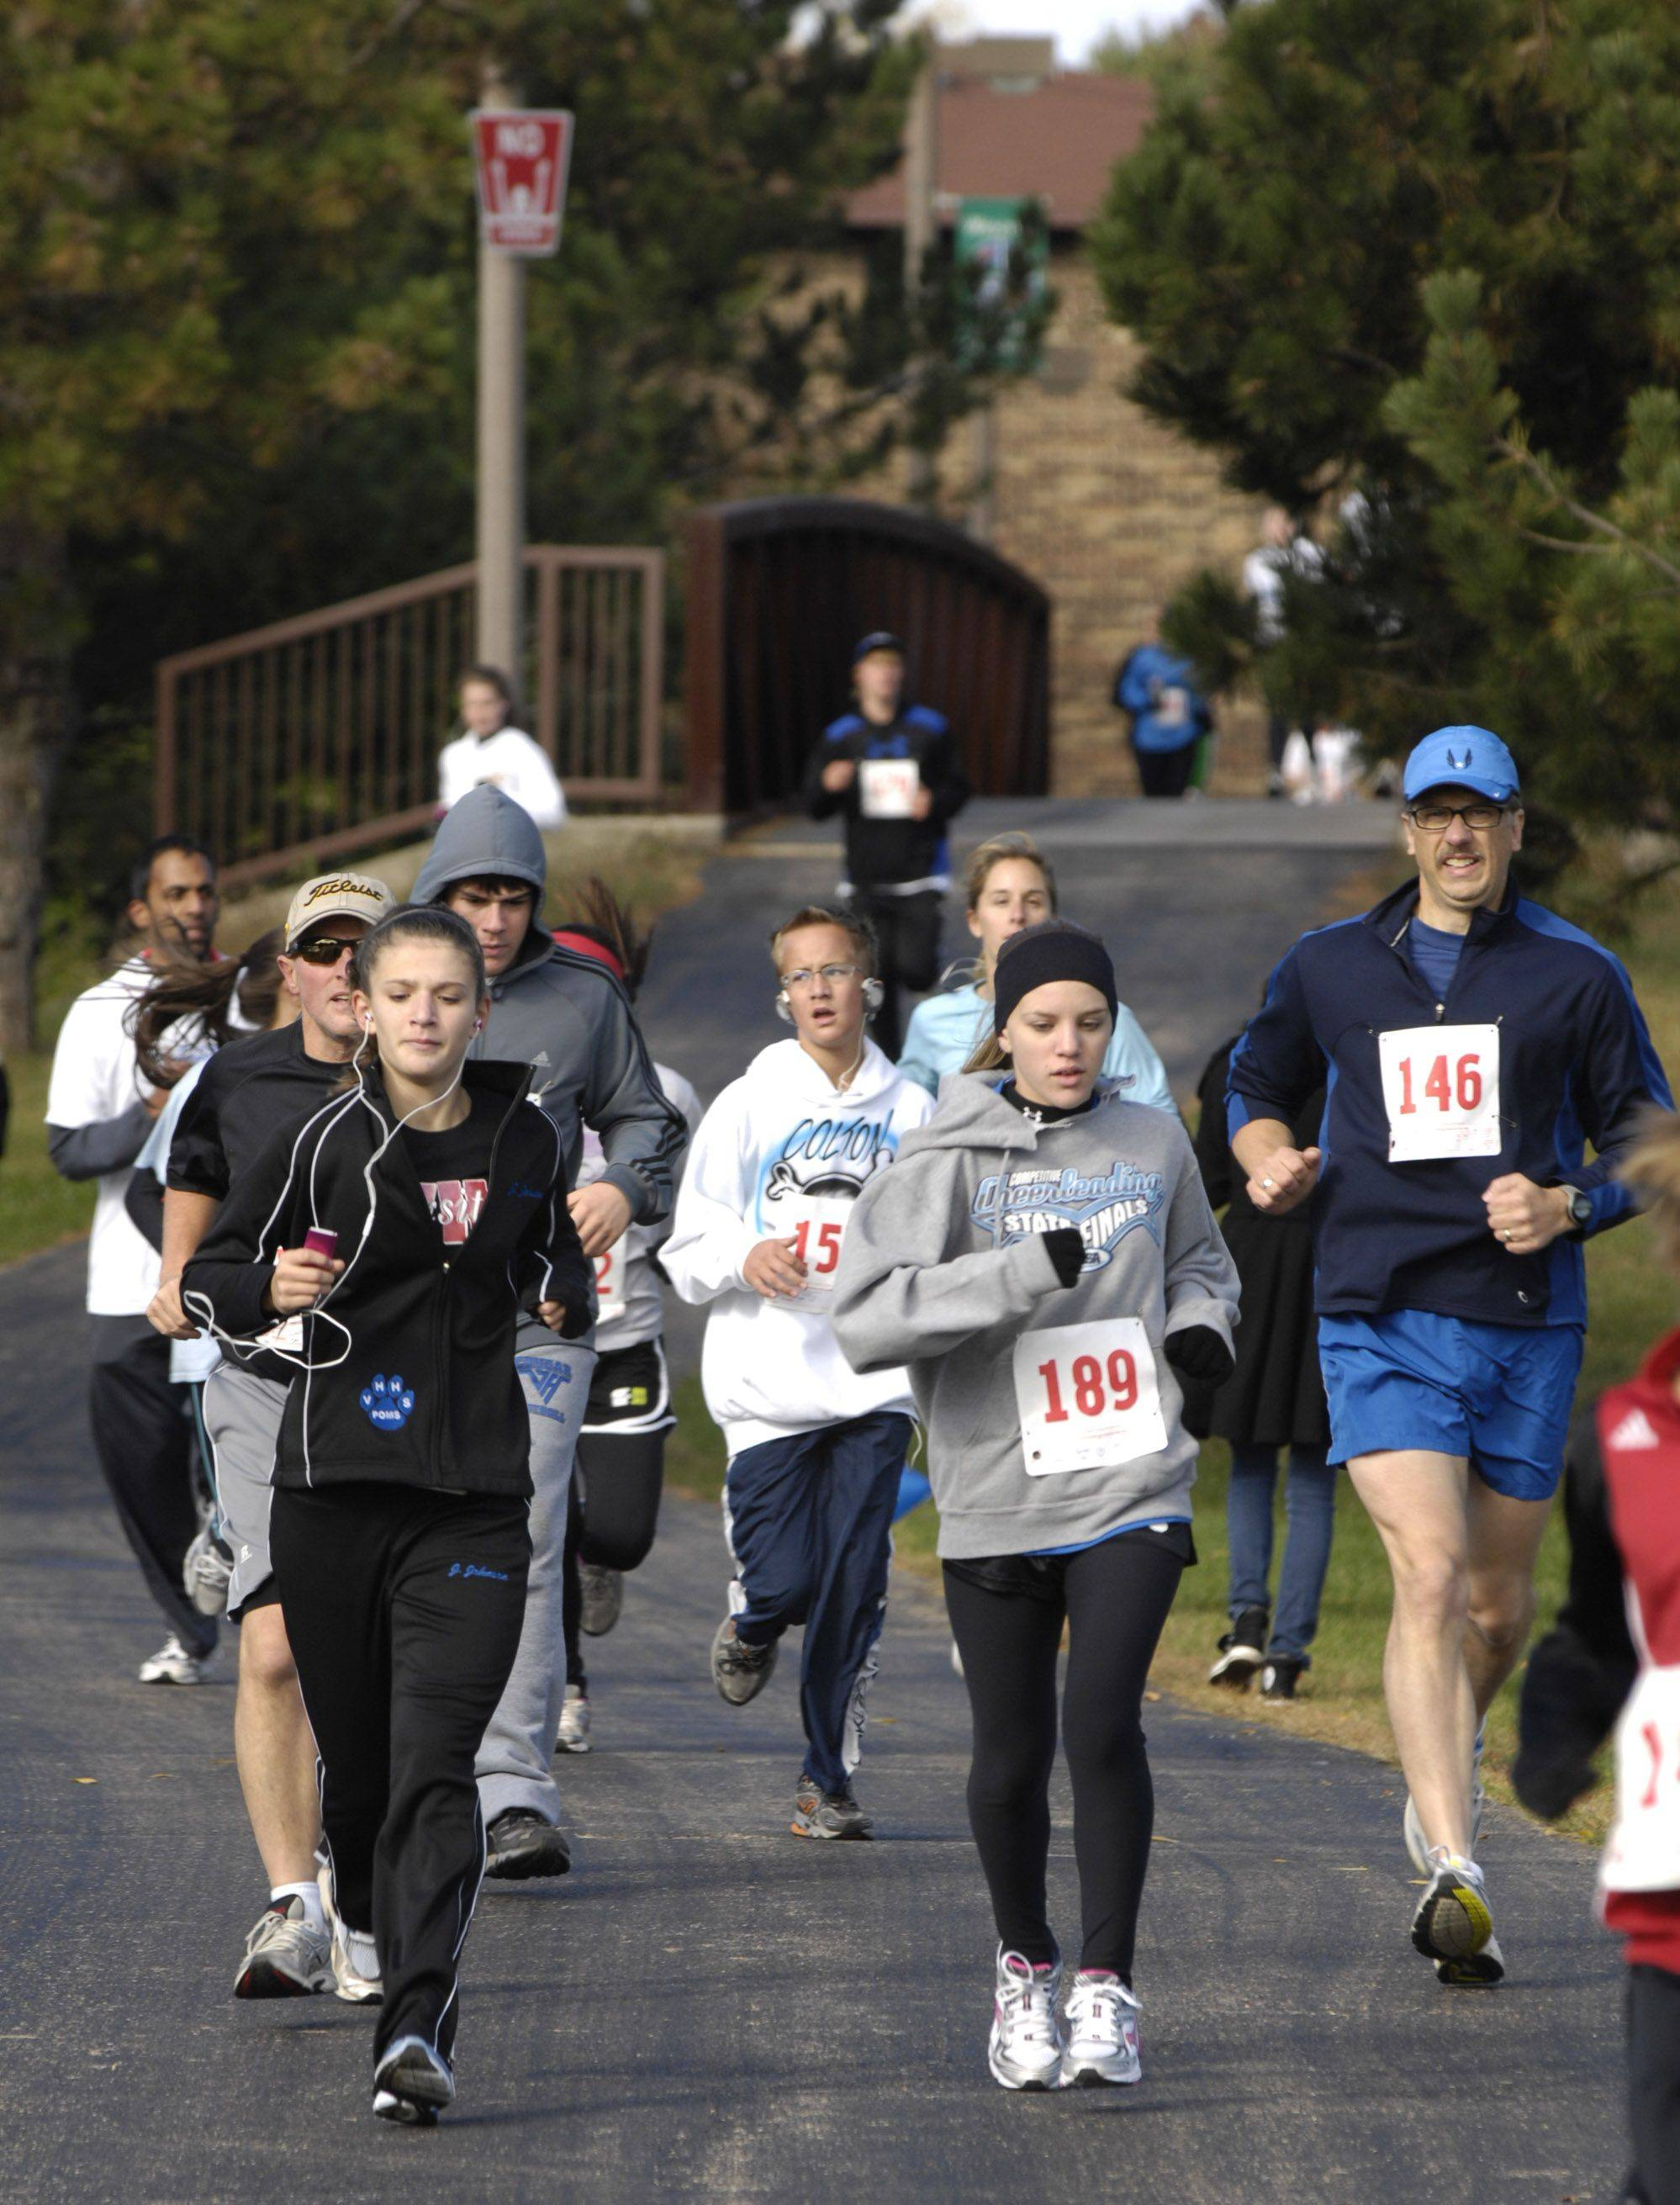 Runners take part in the 5K race around Big Bear Lake in Vernon Hills to benefit the Glaucoma Research Foundation. The event was sponsored by Vernon Hills High School's Health and Wellness Committee.